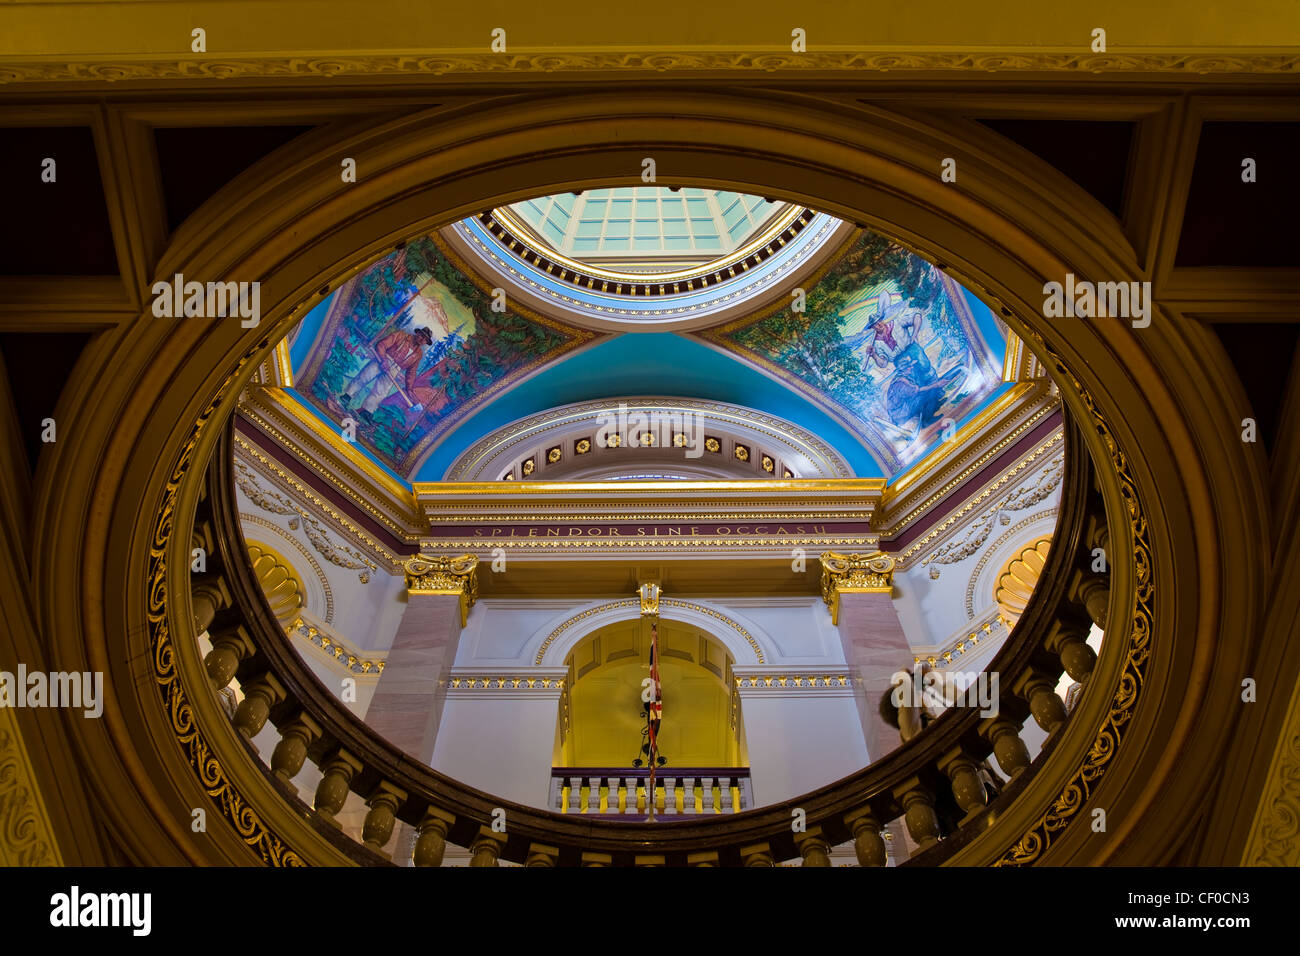 View up to the central rotunda of the British Columbia legislature building, Victoria, Canada Stock Photo